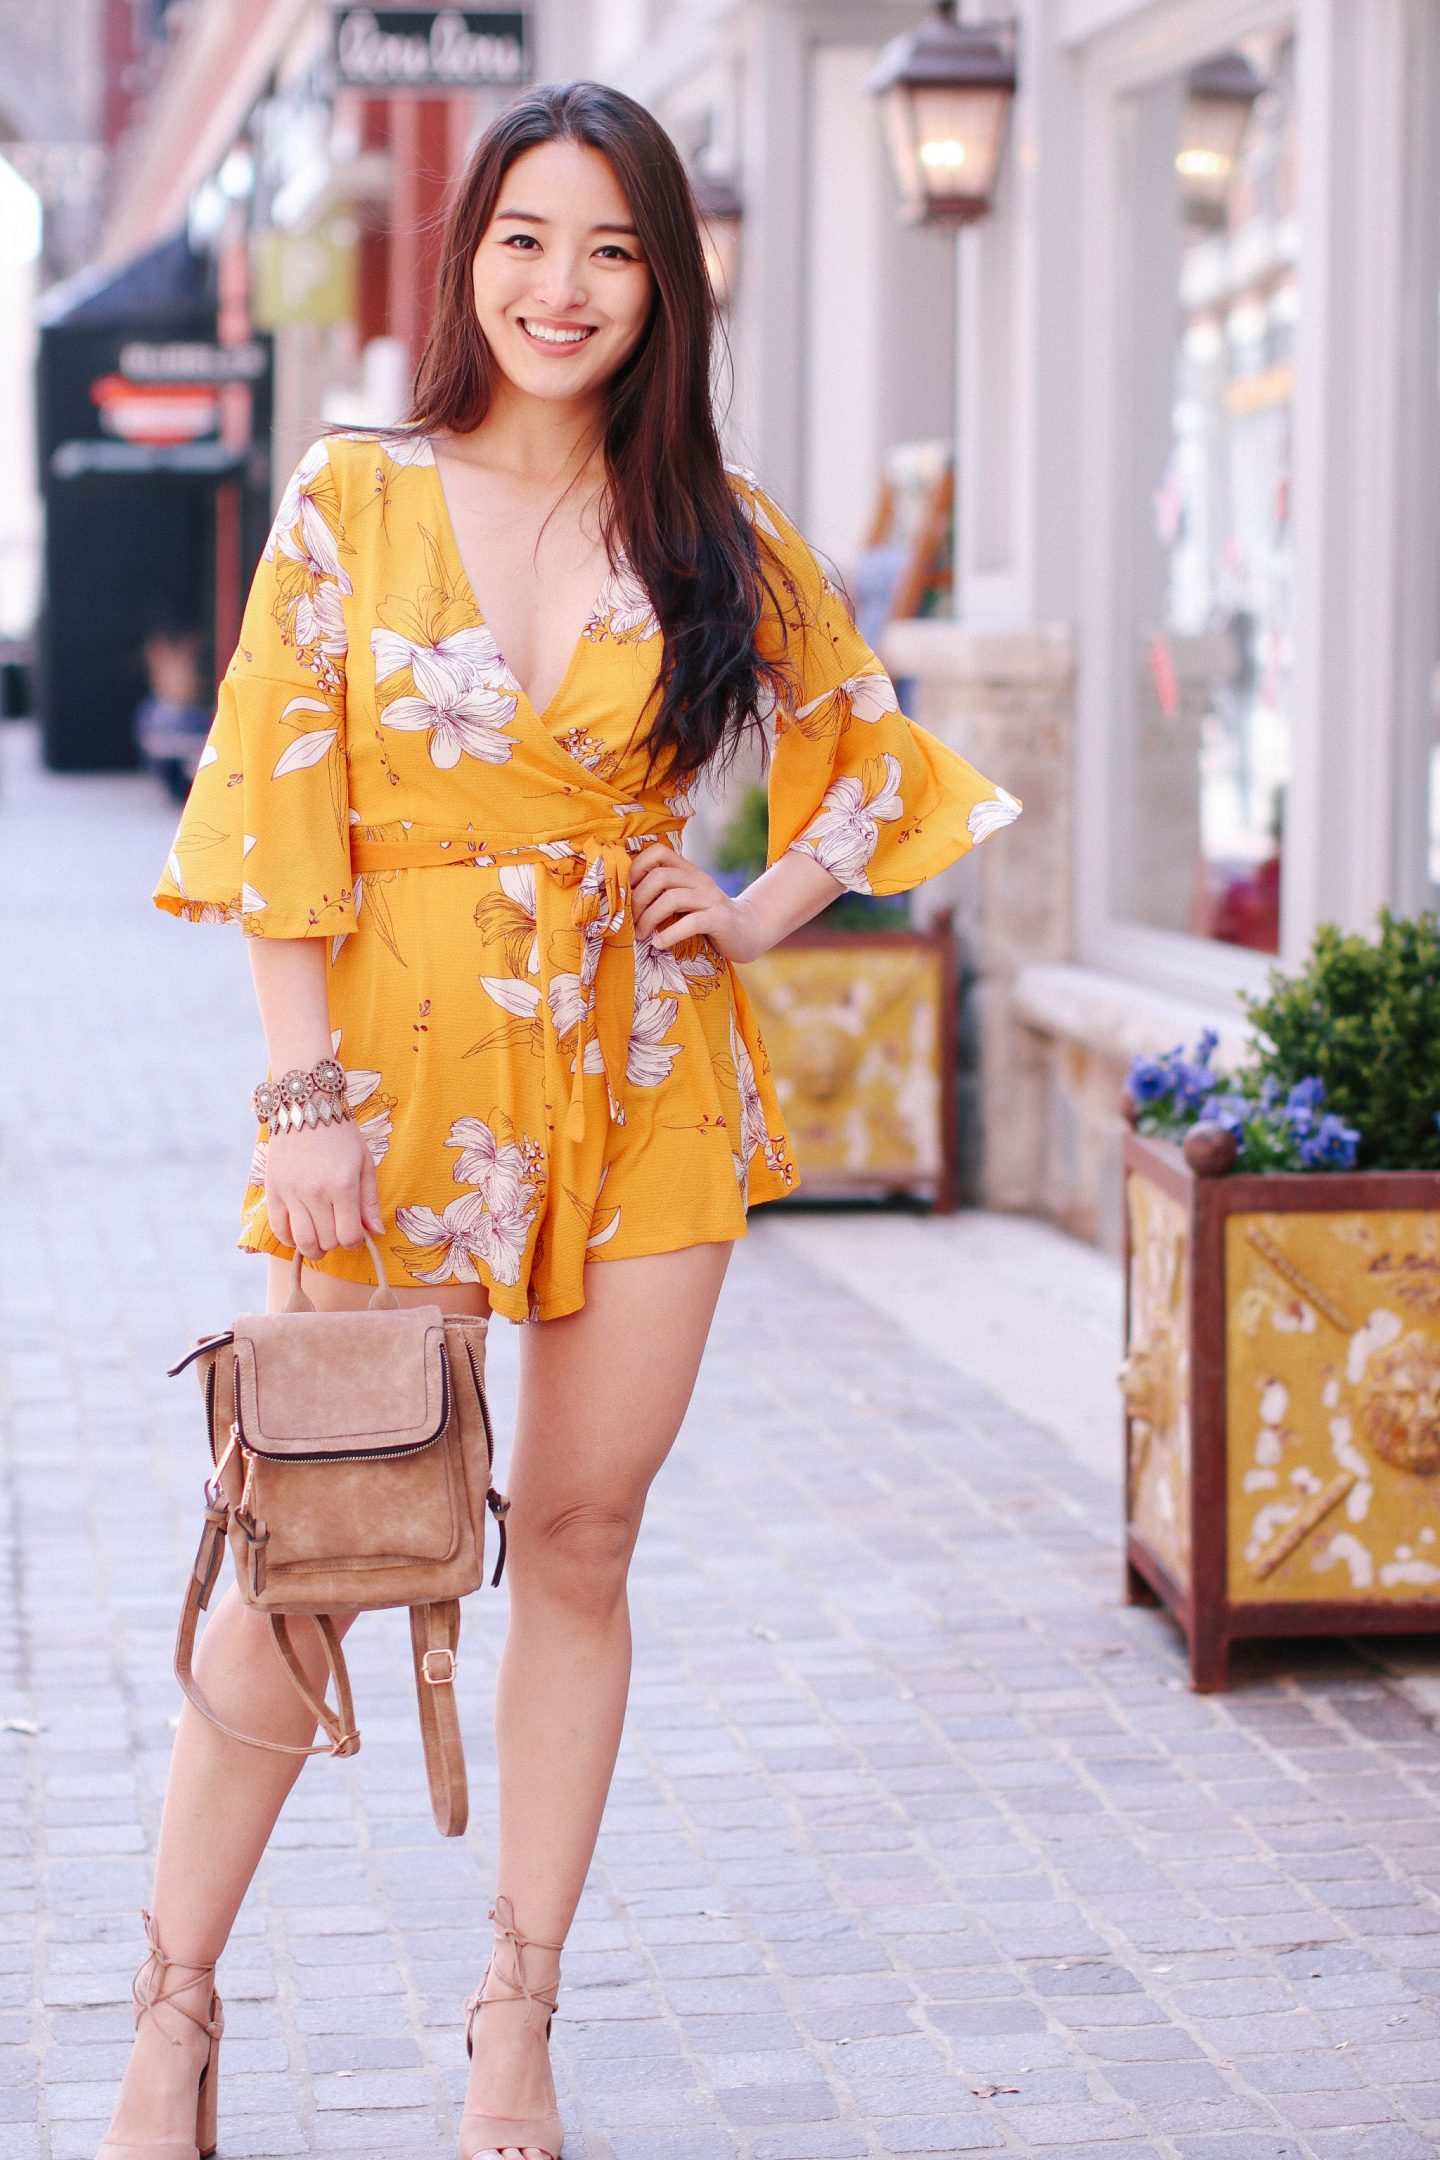 Mustard Playsuit - How to Style a Floral Romper featured by popular California fashion blogger, Lizzie In Lace